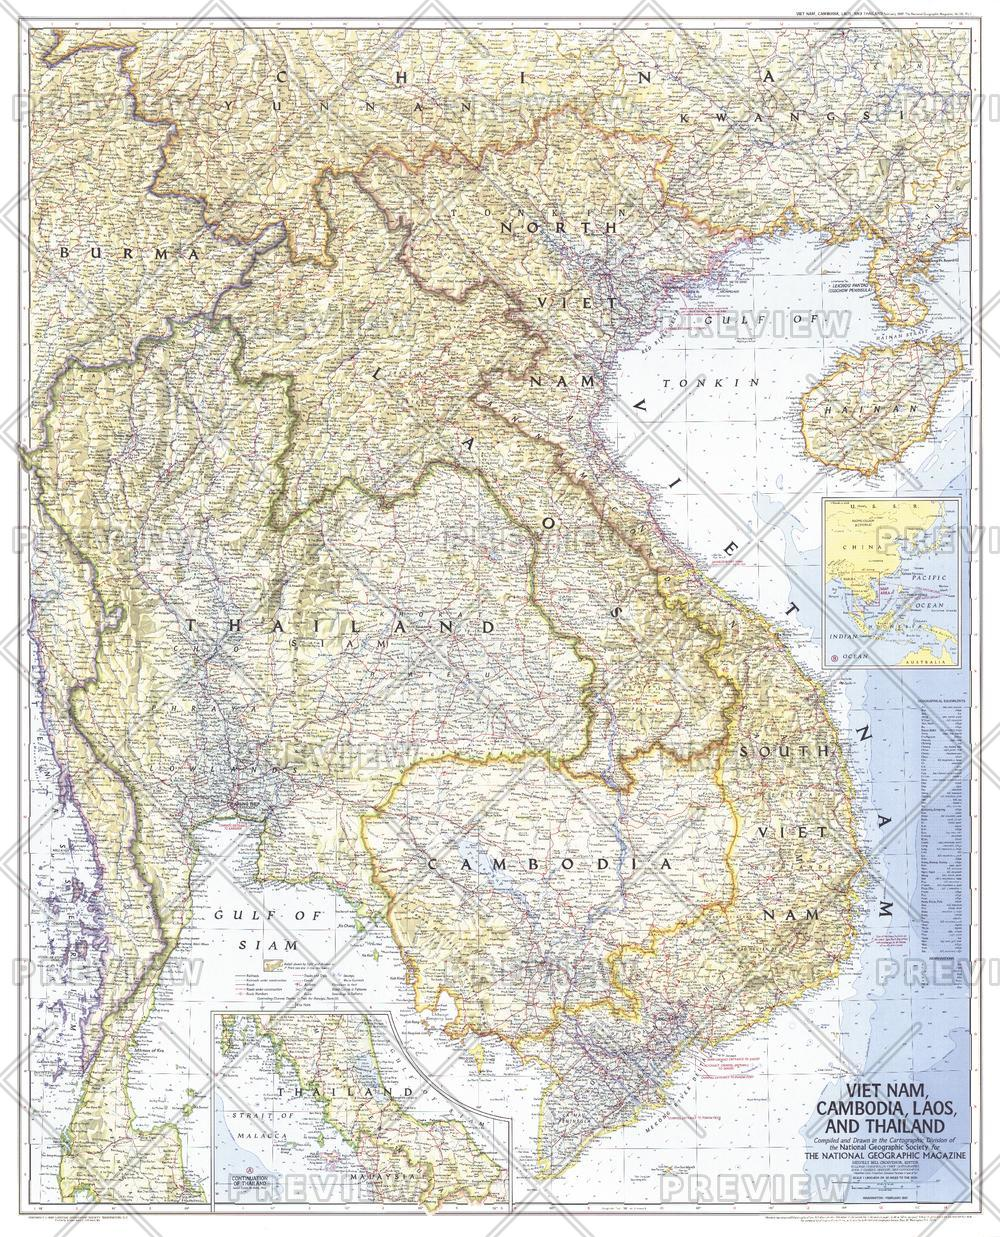 Vietnam, Cambodia, Laos, and Thailand  -  Published 1967